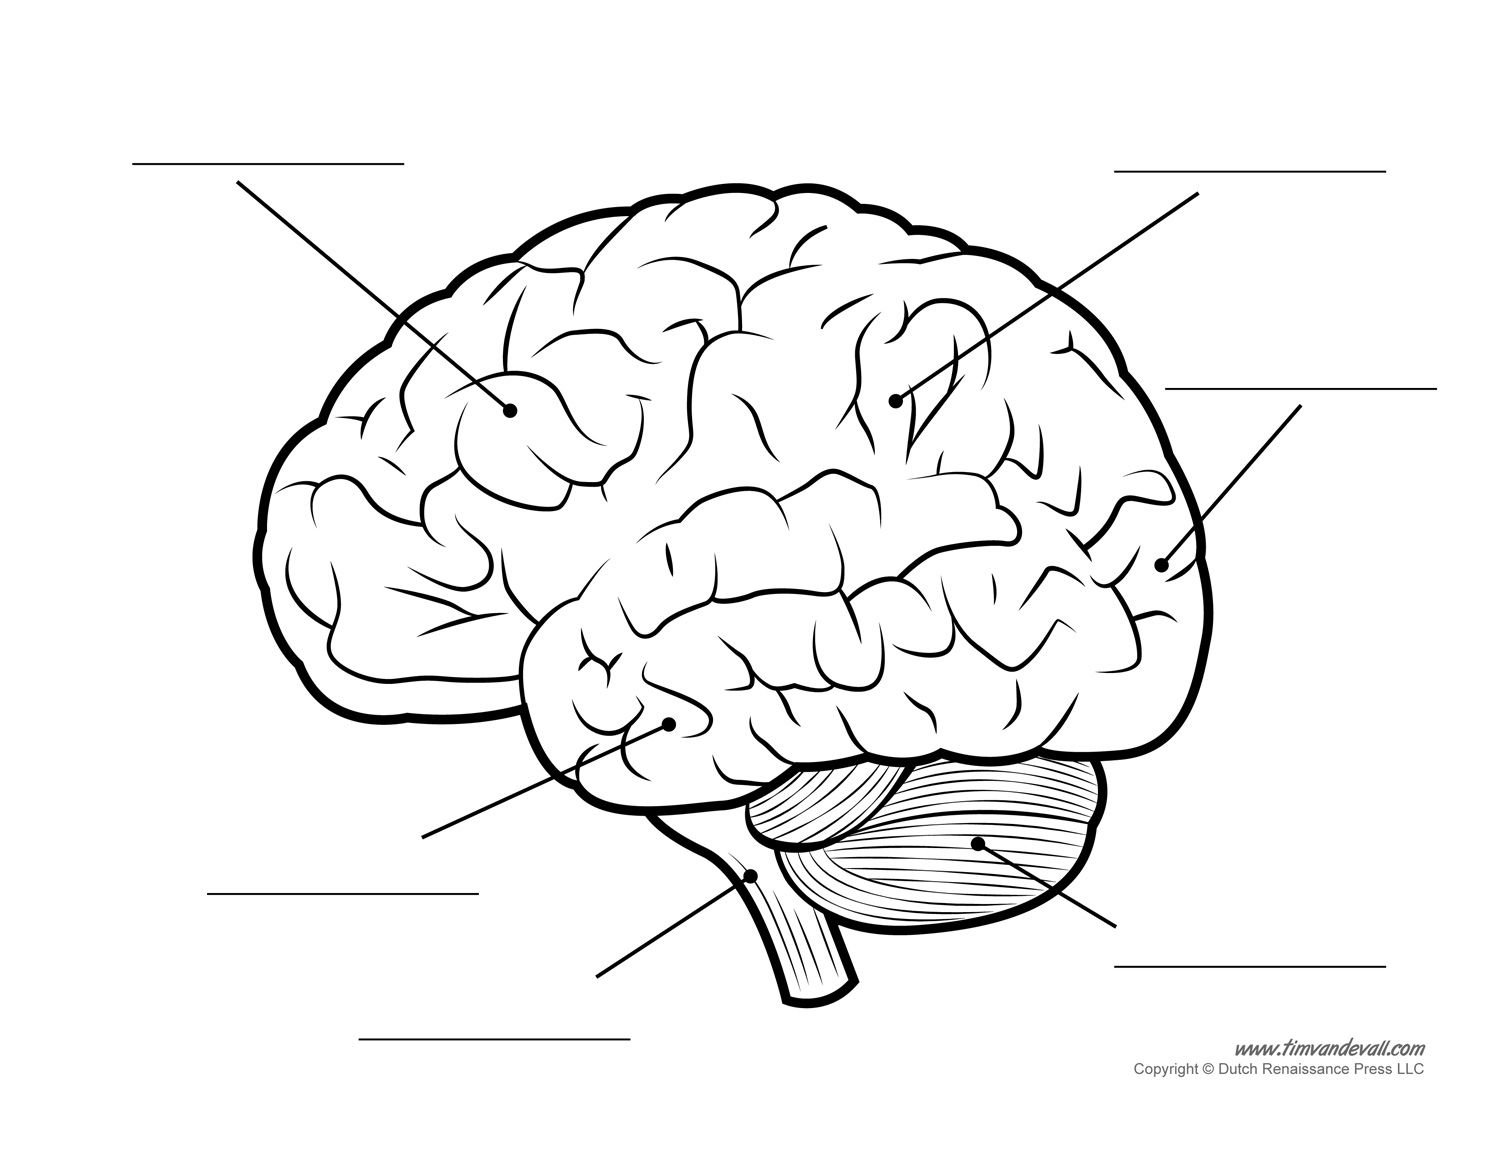 Parts of the brain clipart image royalty free library Labeled Diagram Of The Human Brain . Labeled Diagram Of The ... image royalty free library